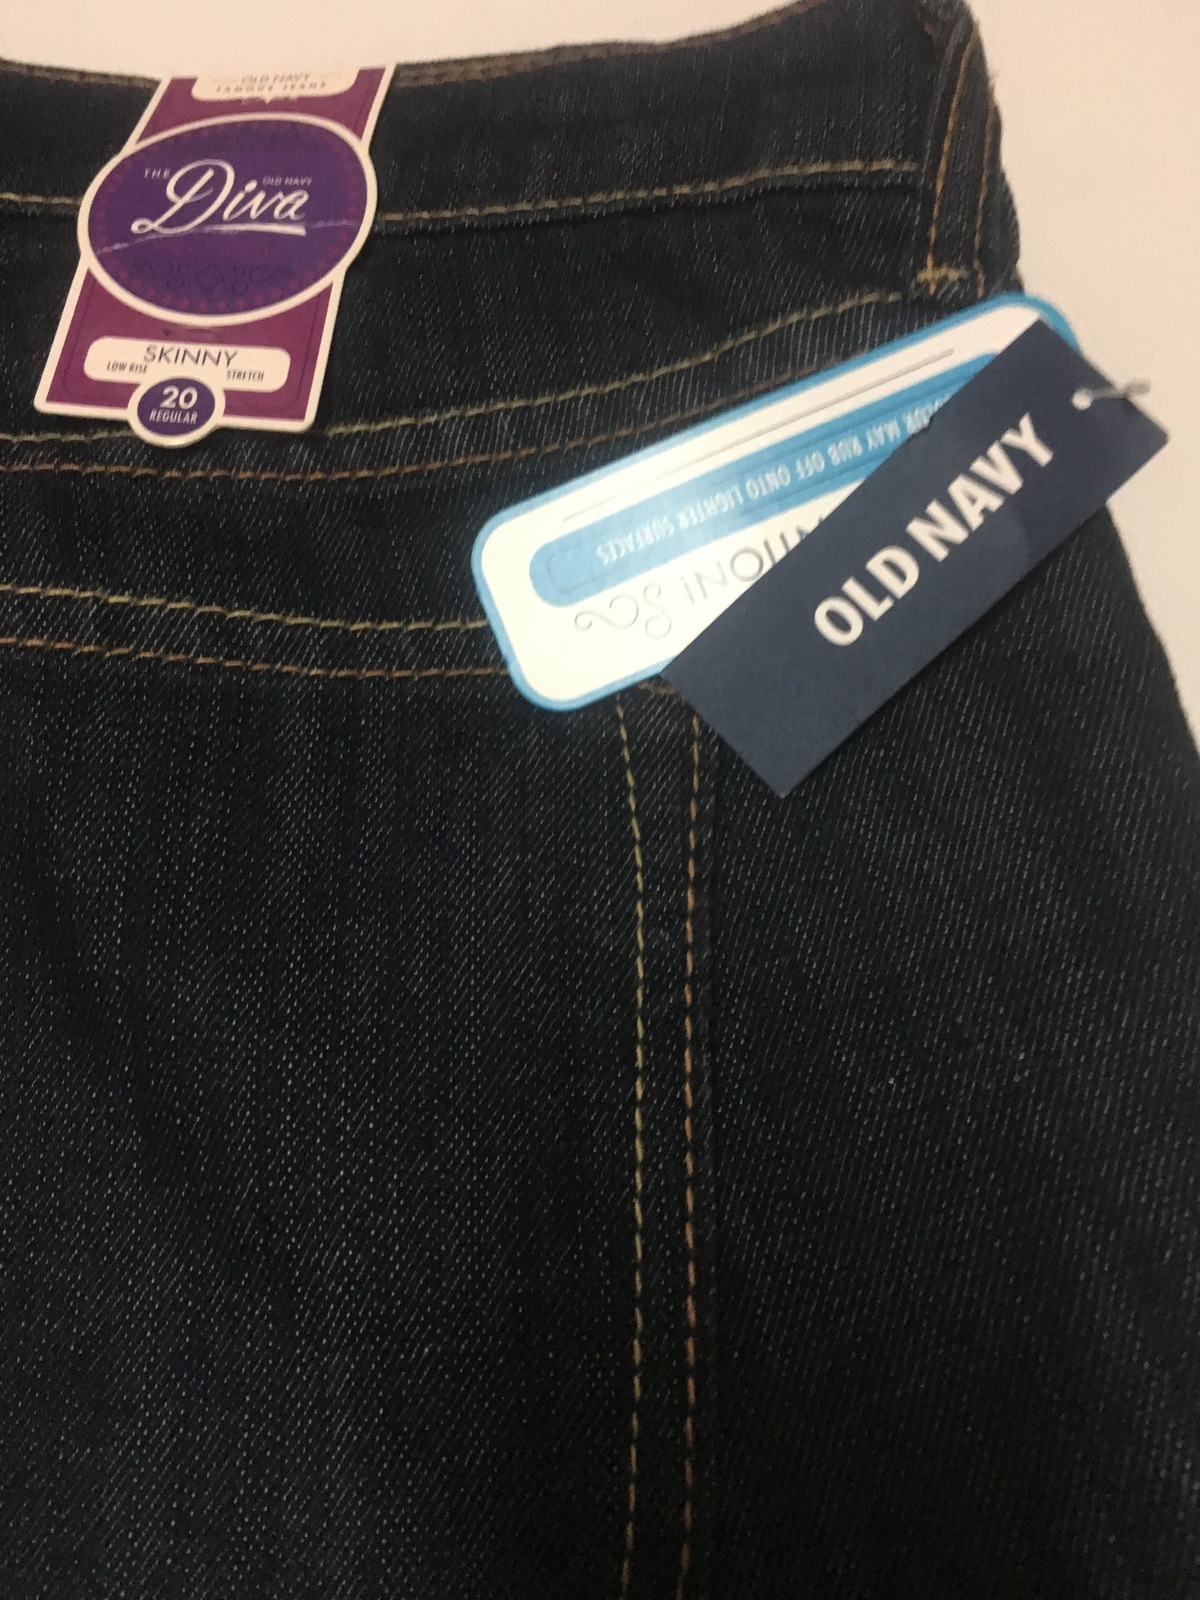 Old Navy Diva Jeans Skinny Low Rise Stretch Sz 20 Regular